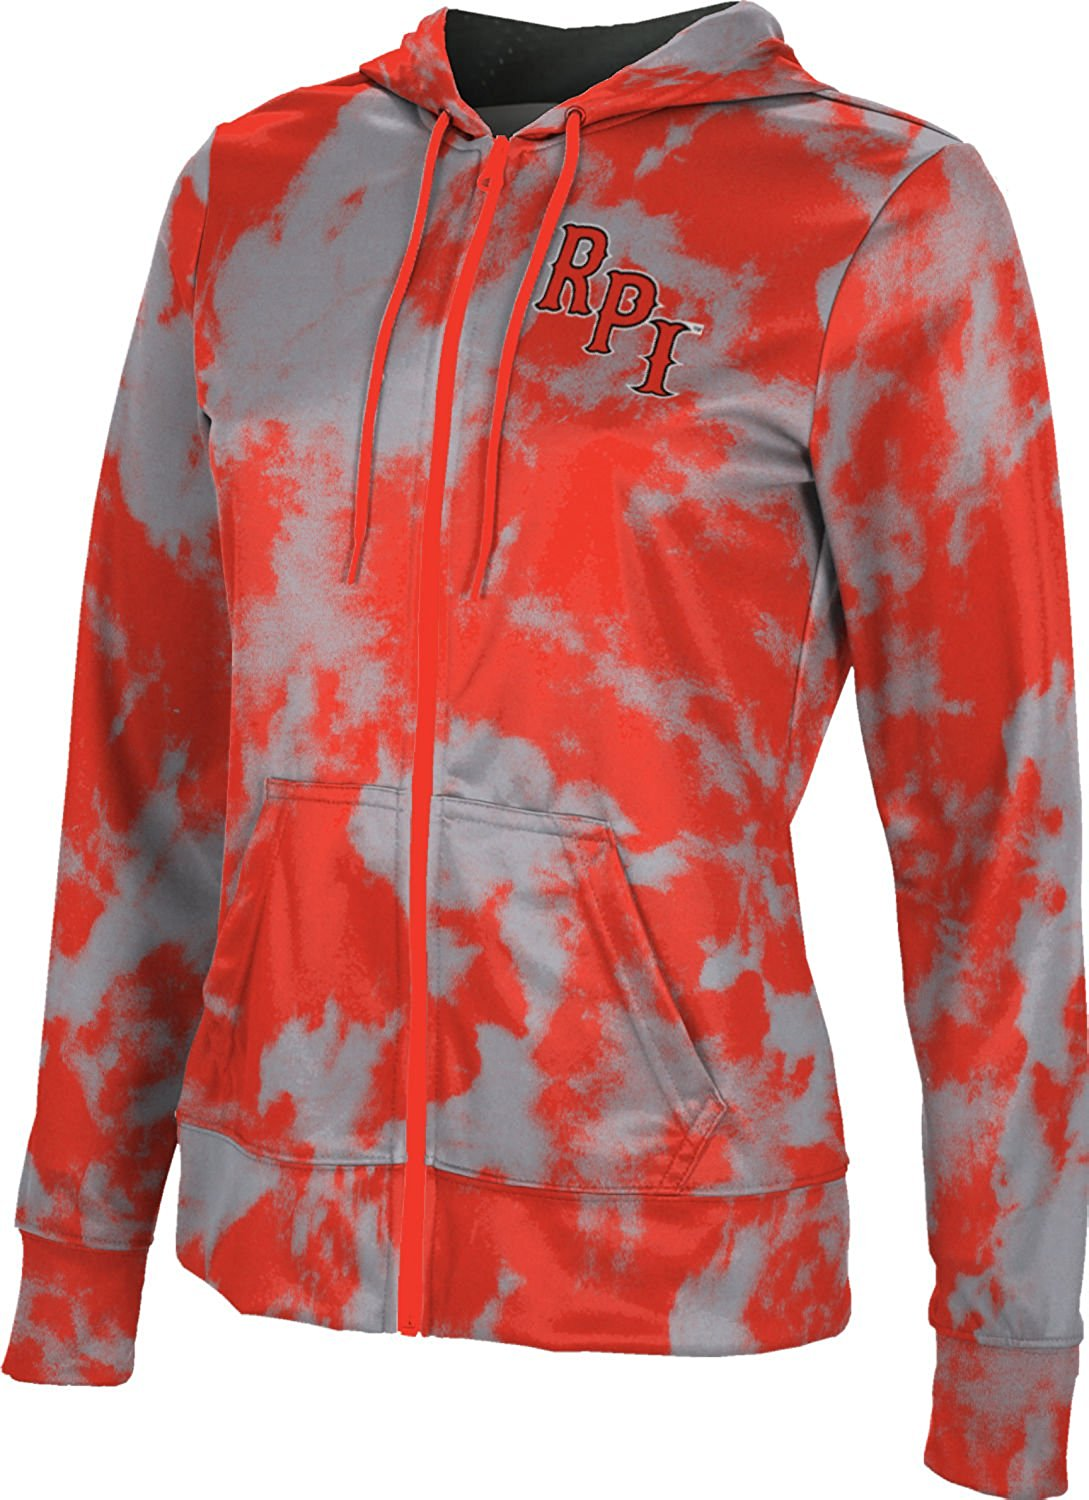 ProSphere Rensselaer Polytechnic Institute University Women's Full Zip Hoodie - Grunge